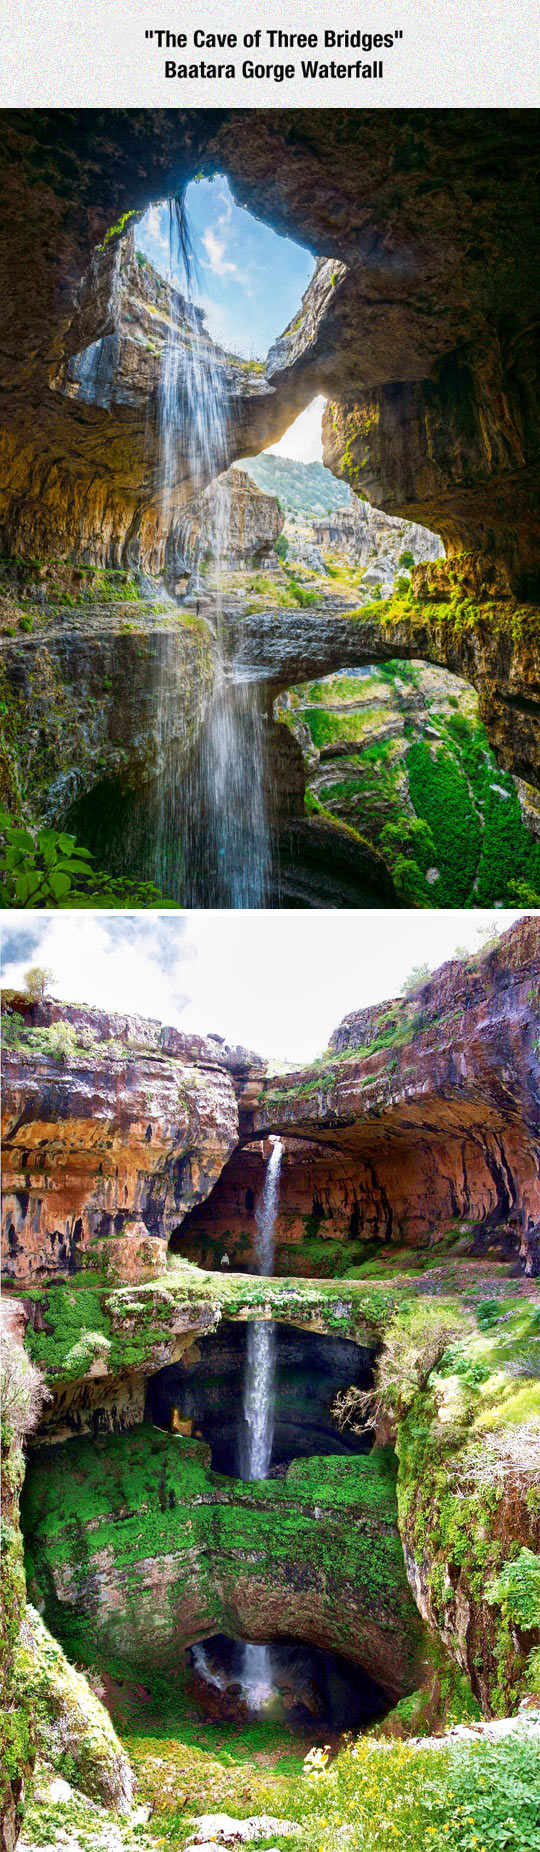 cave-bridges-baatara-gorge-waterfall